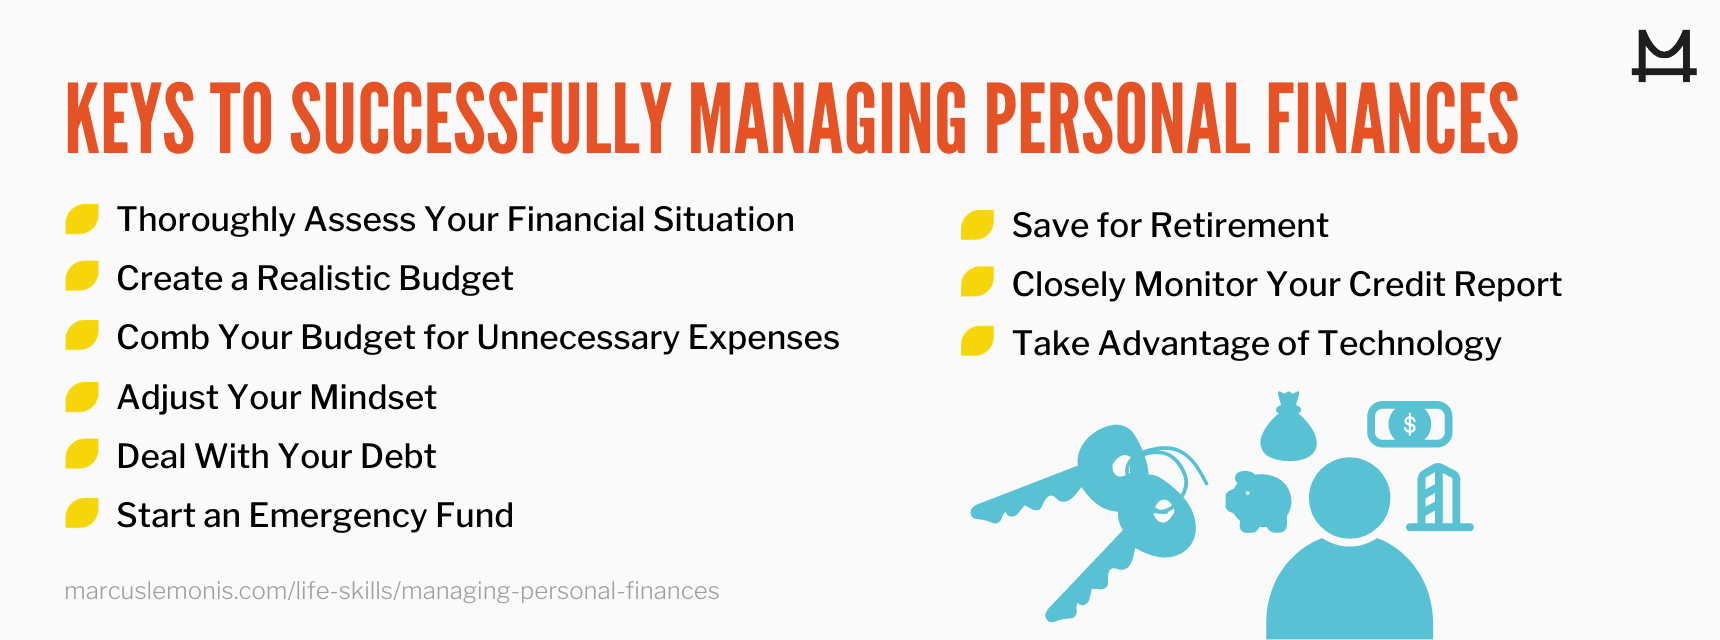 List of ways on how to successfully manage your personal finances